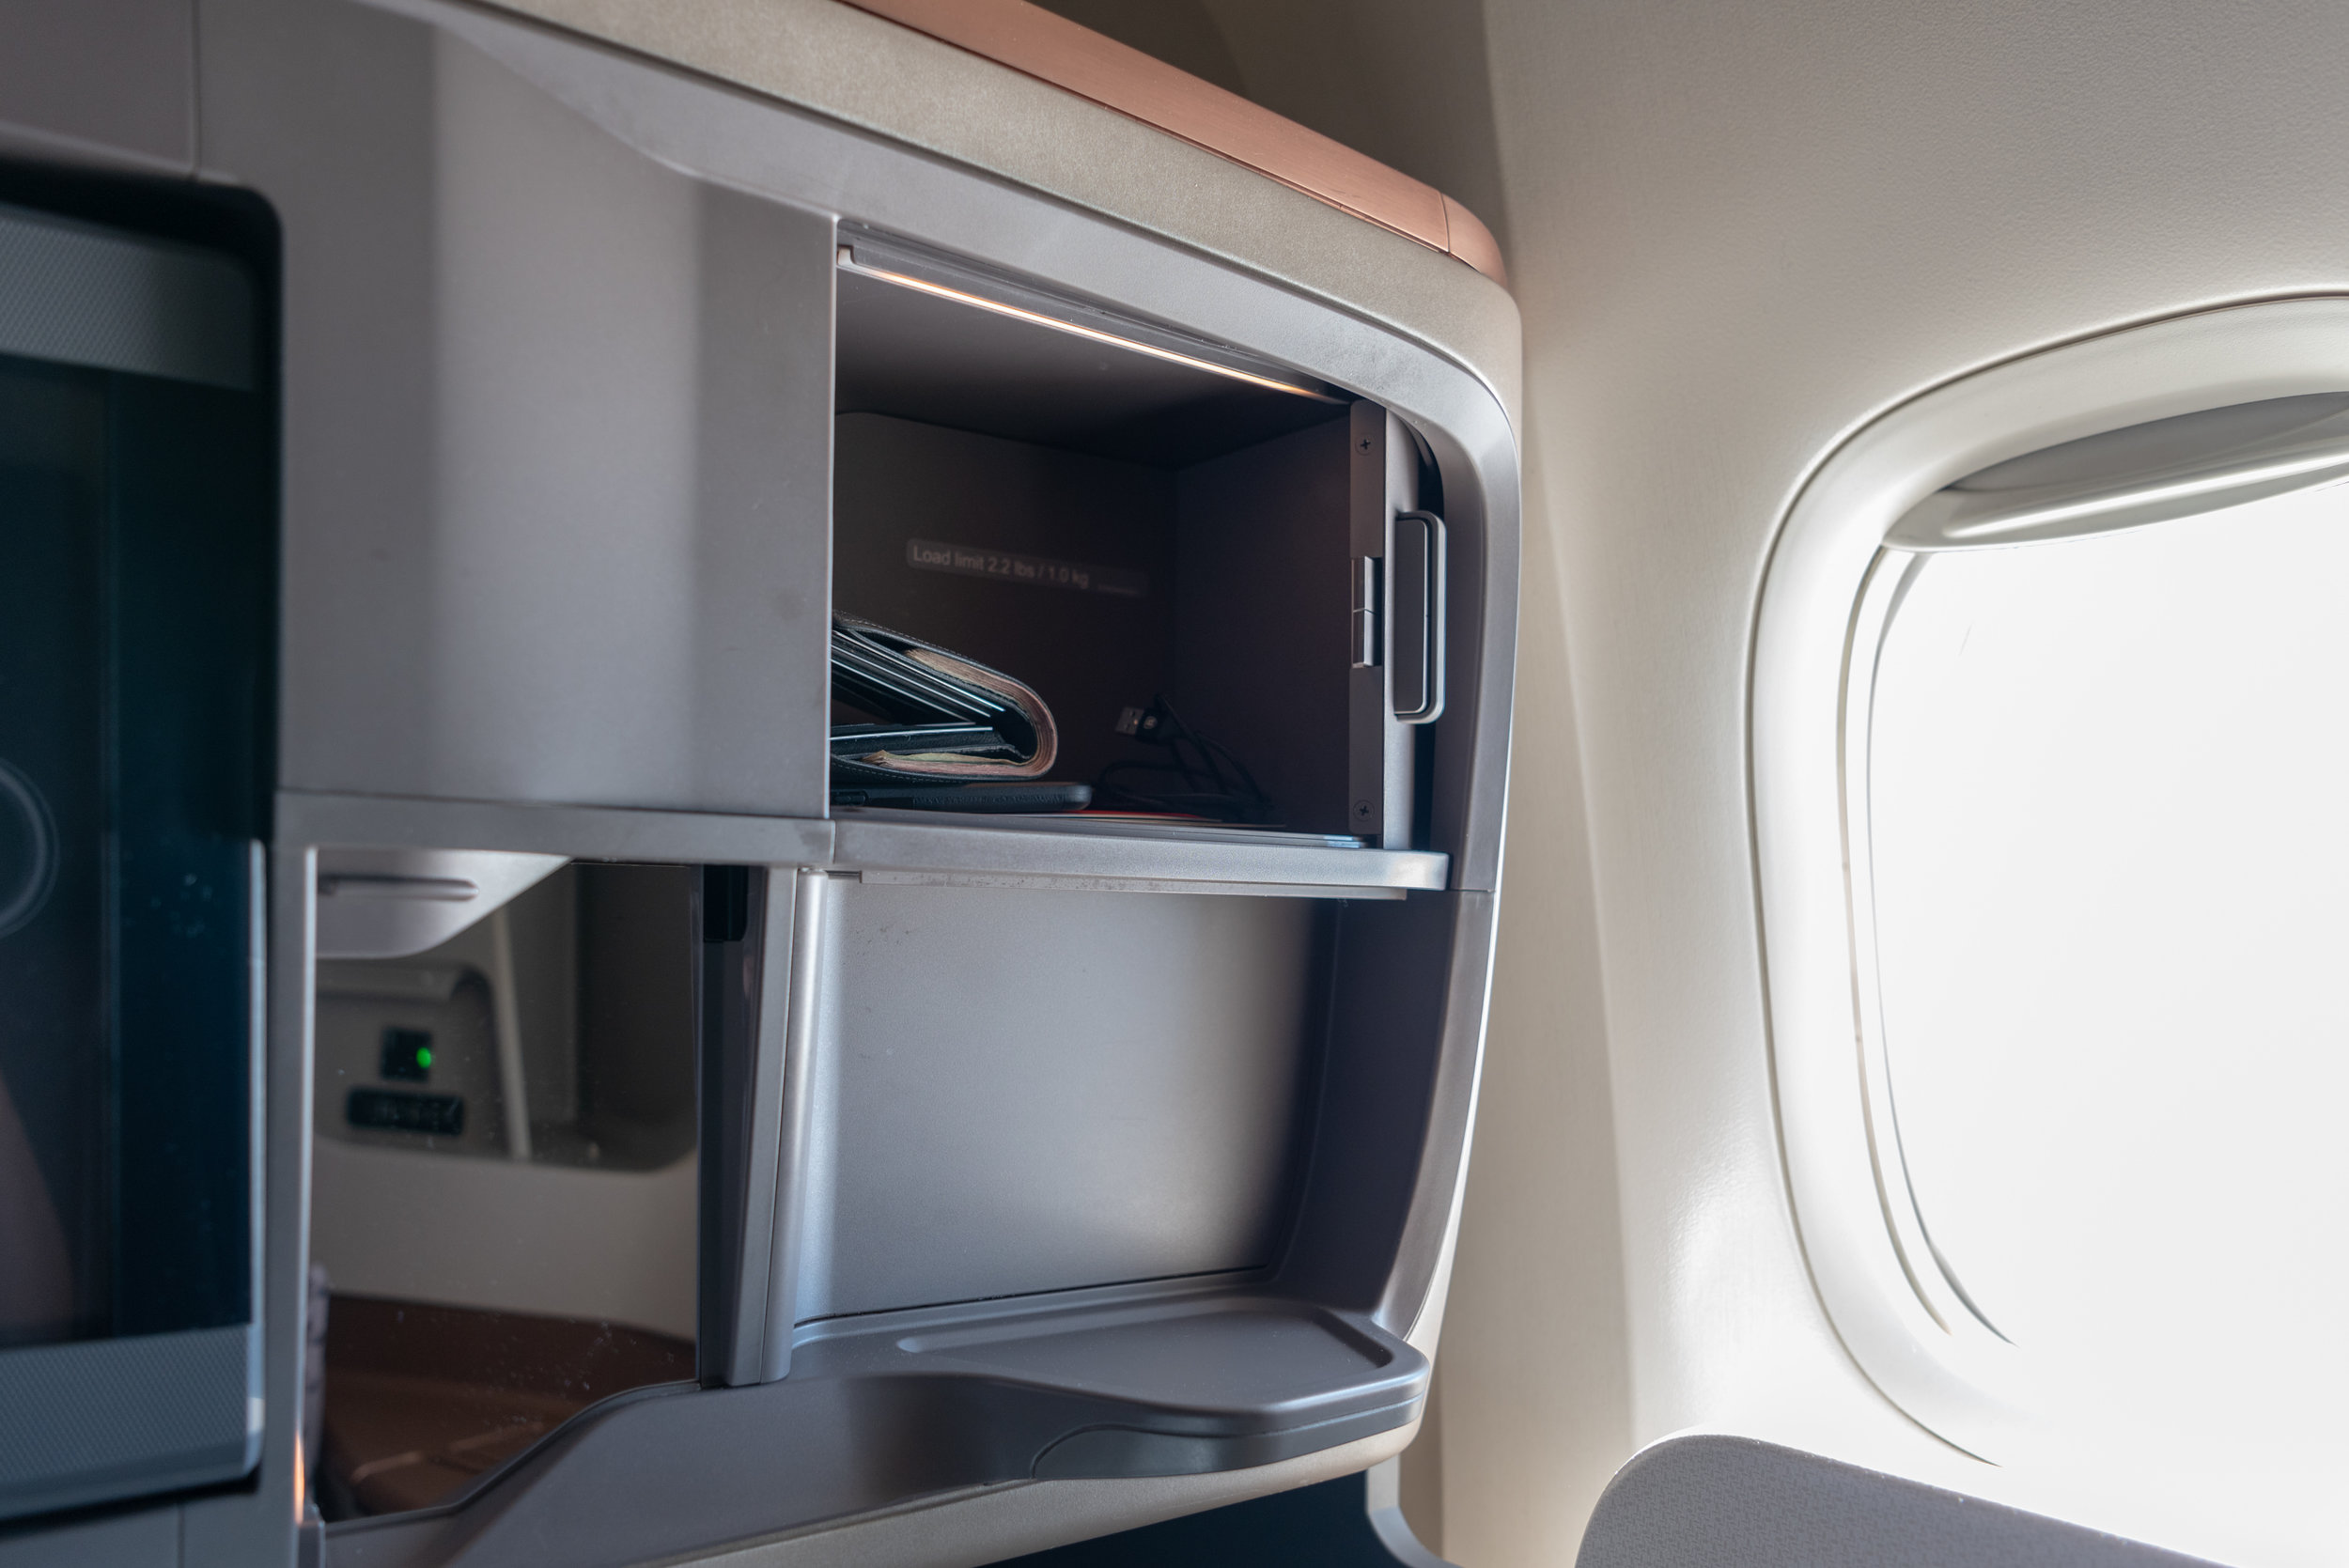 Storage Compartments and Personal Mirror  Singapore Airlines Business Class SQ828 777-300ER - SIN to PVG